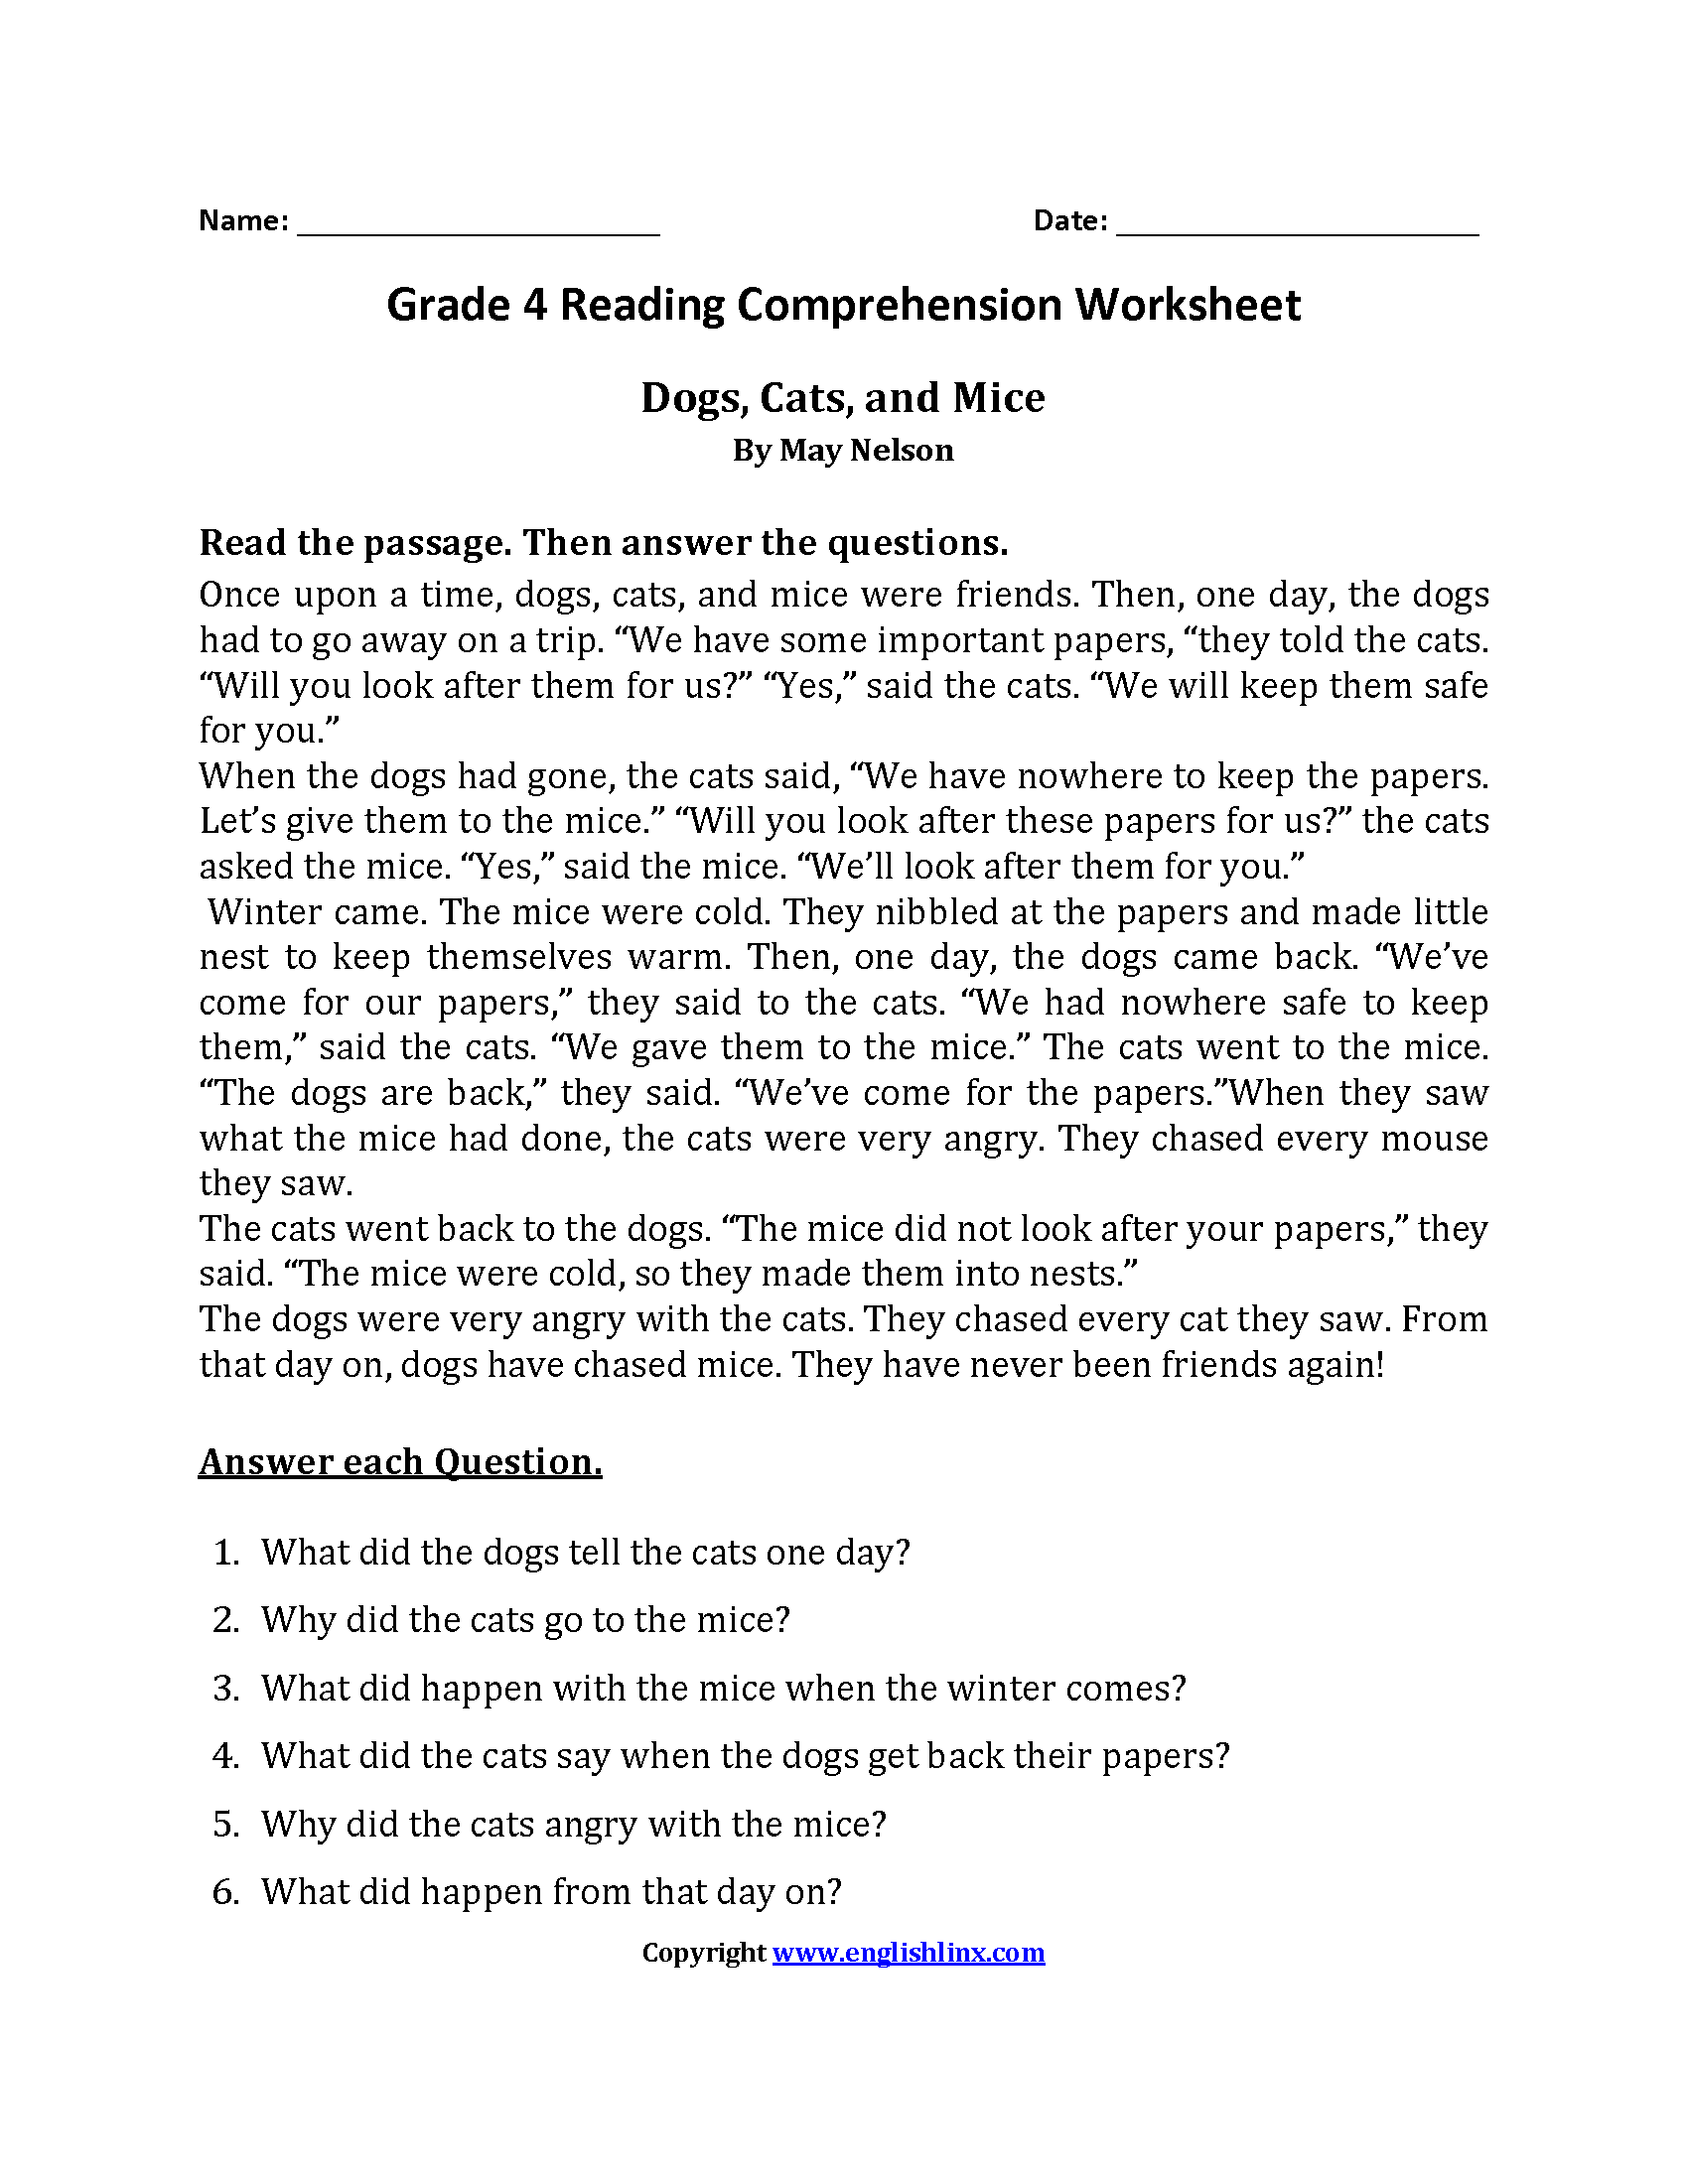 Dogs Cats And Mice Fourth Grade Reading Worksheets With